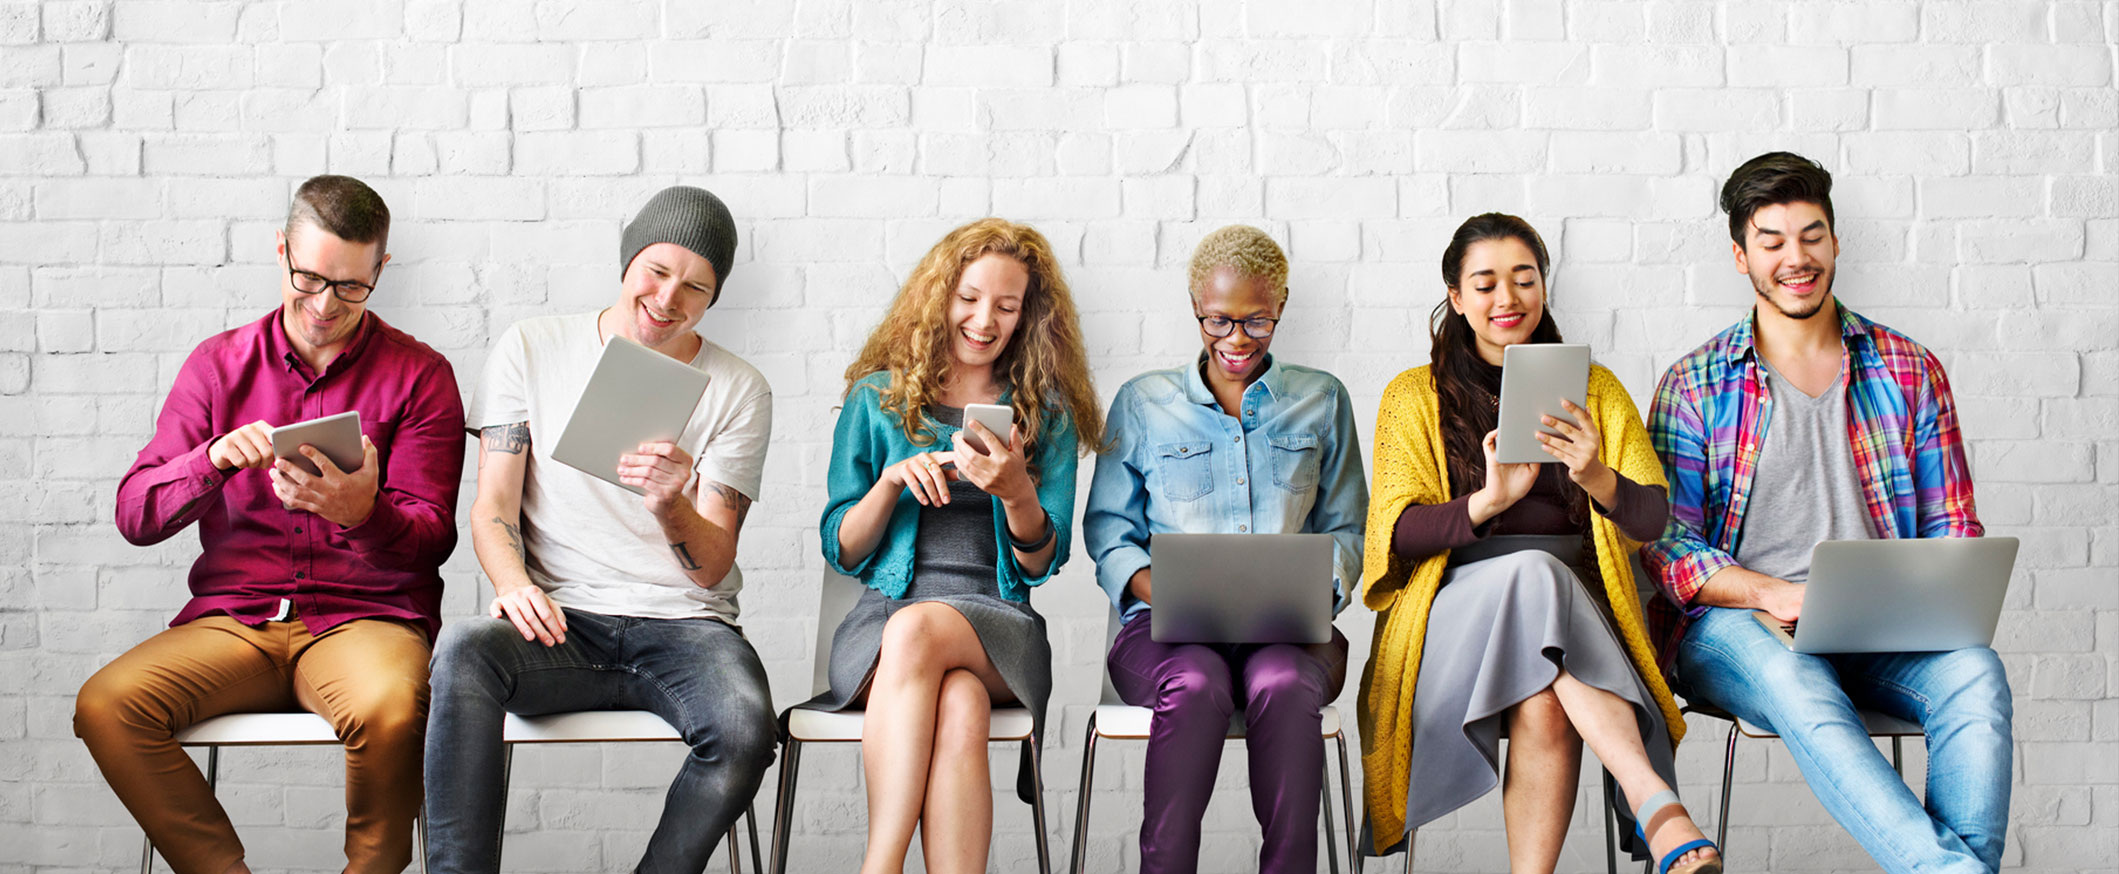 row of young people using mobile devices